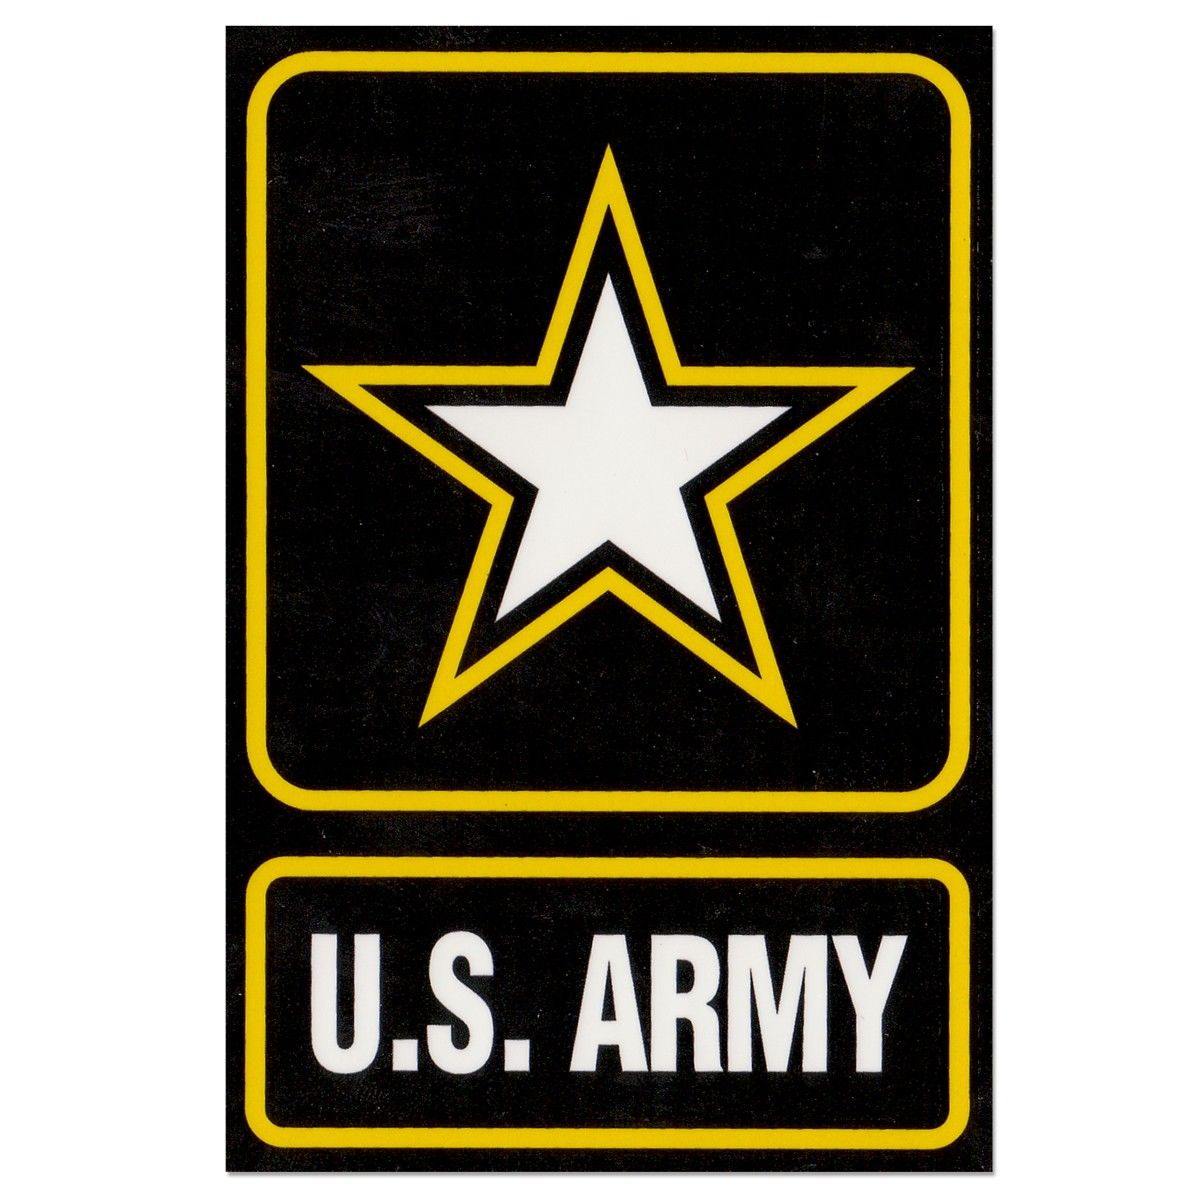 Army clipart army logo. Us wallpapers group hd